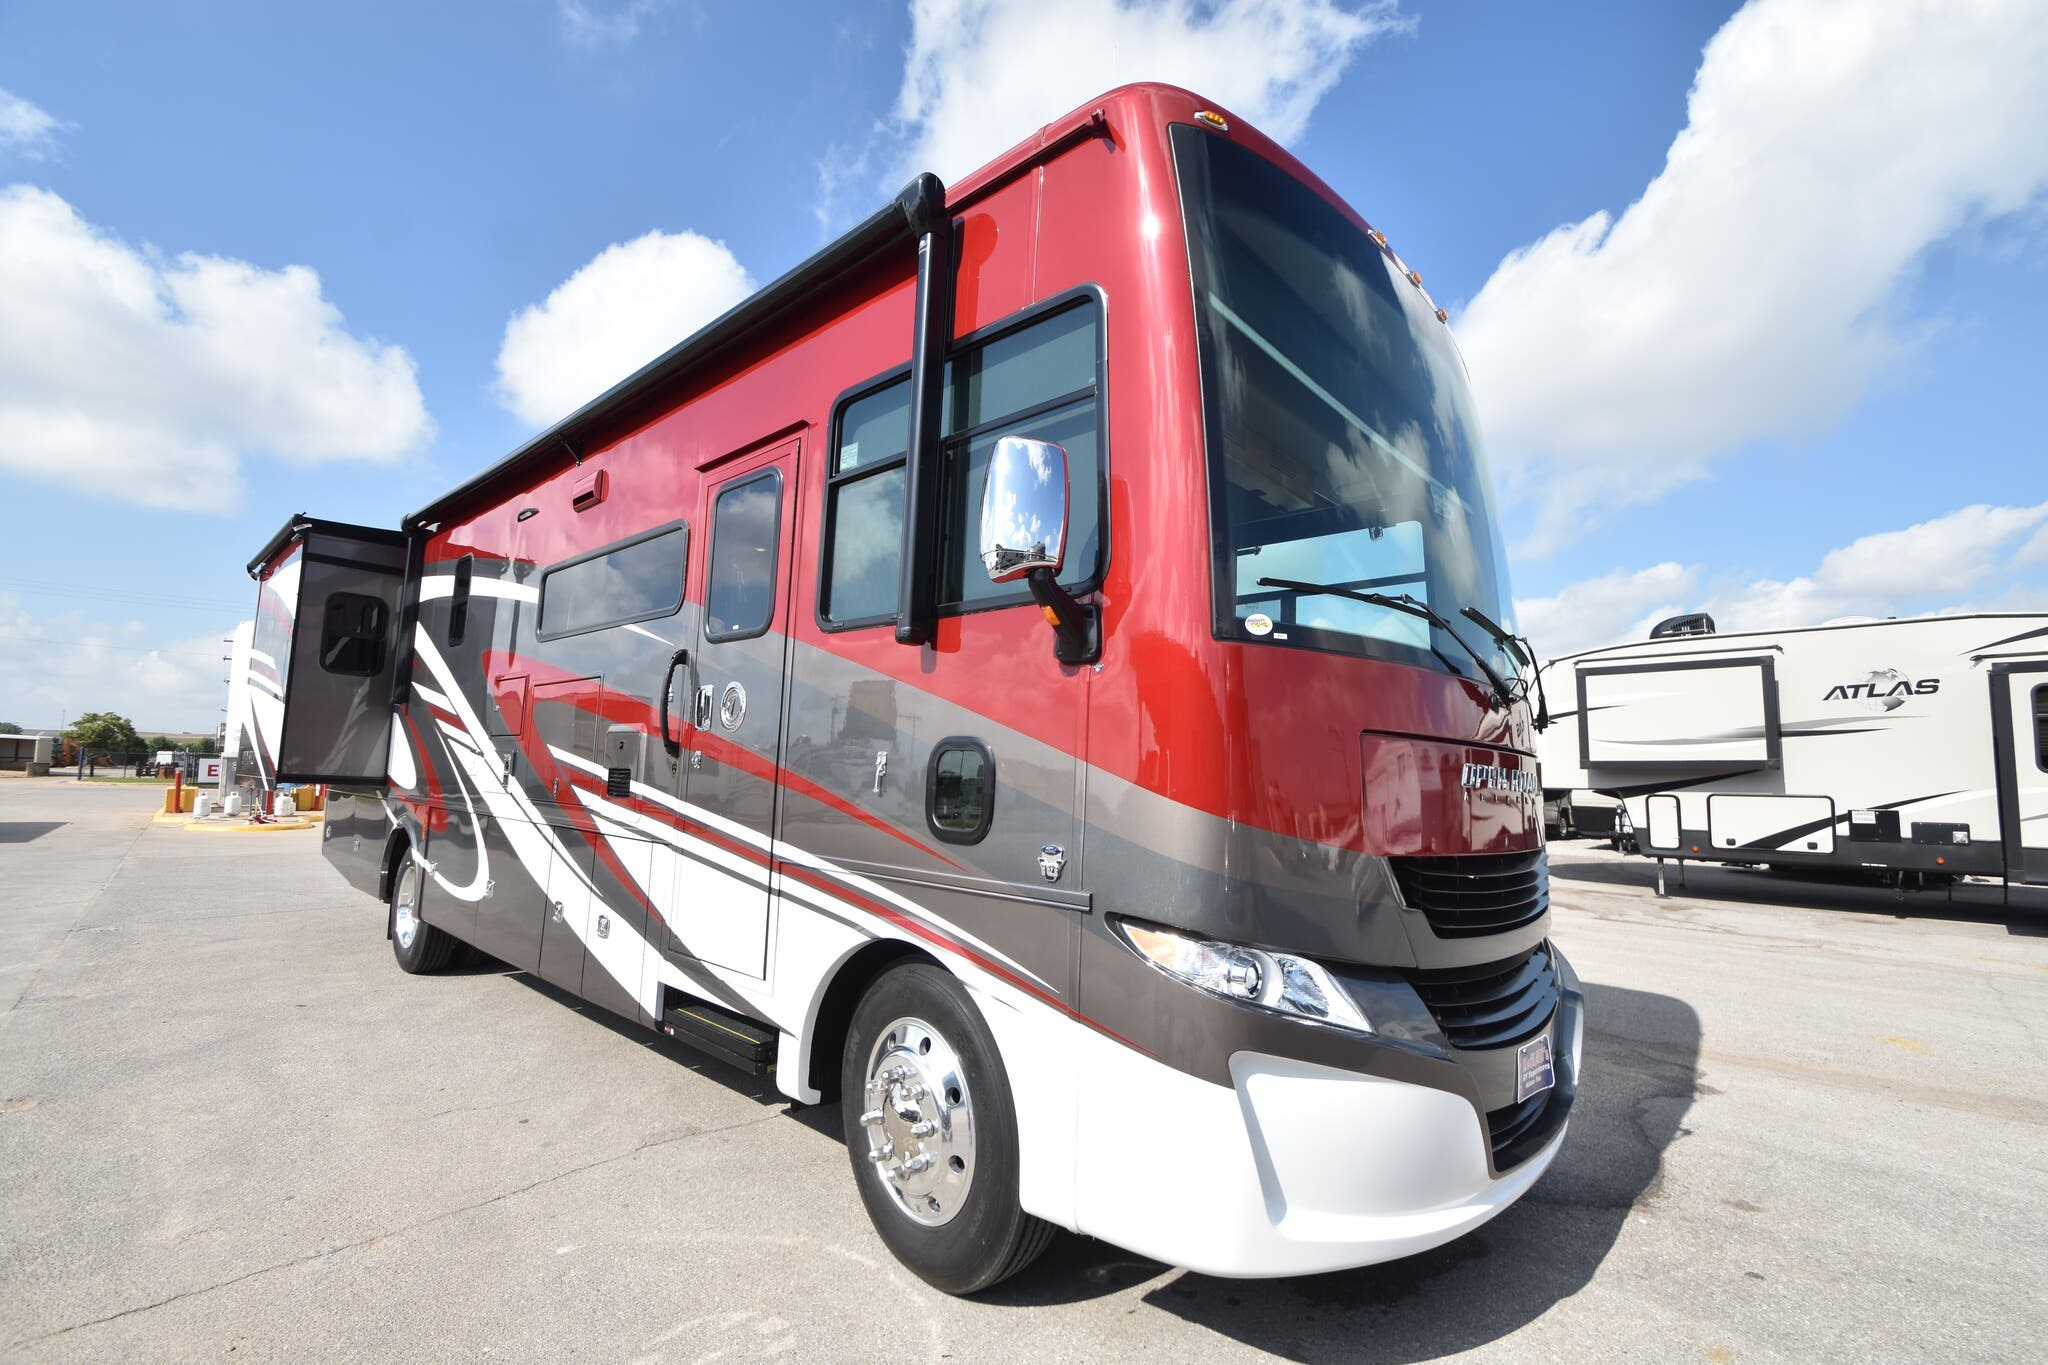 RV For Sale In Texas and Oklahoma | McClain's RV Super Store